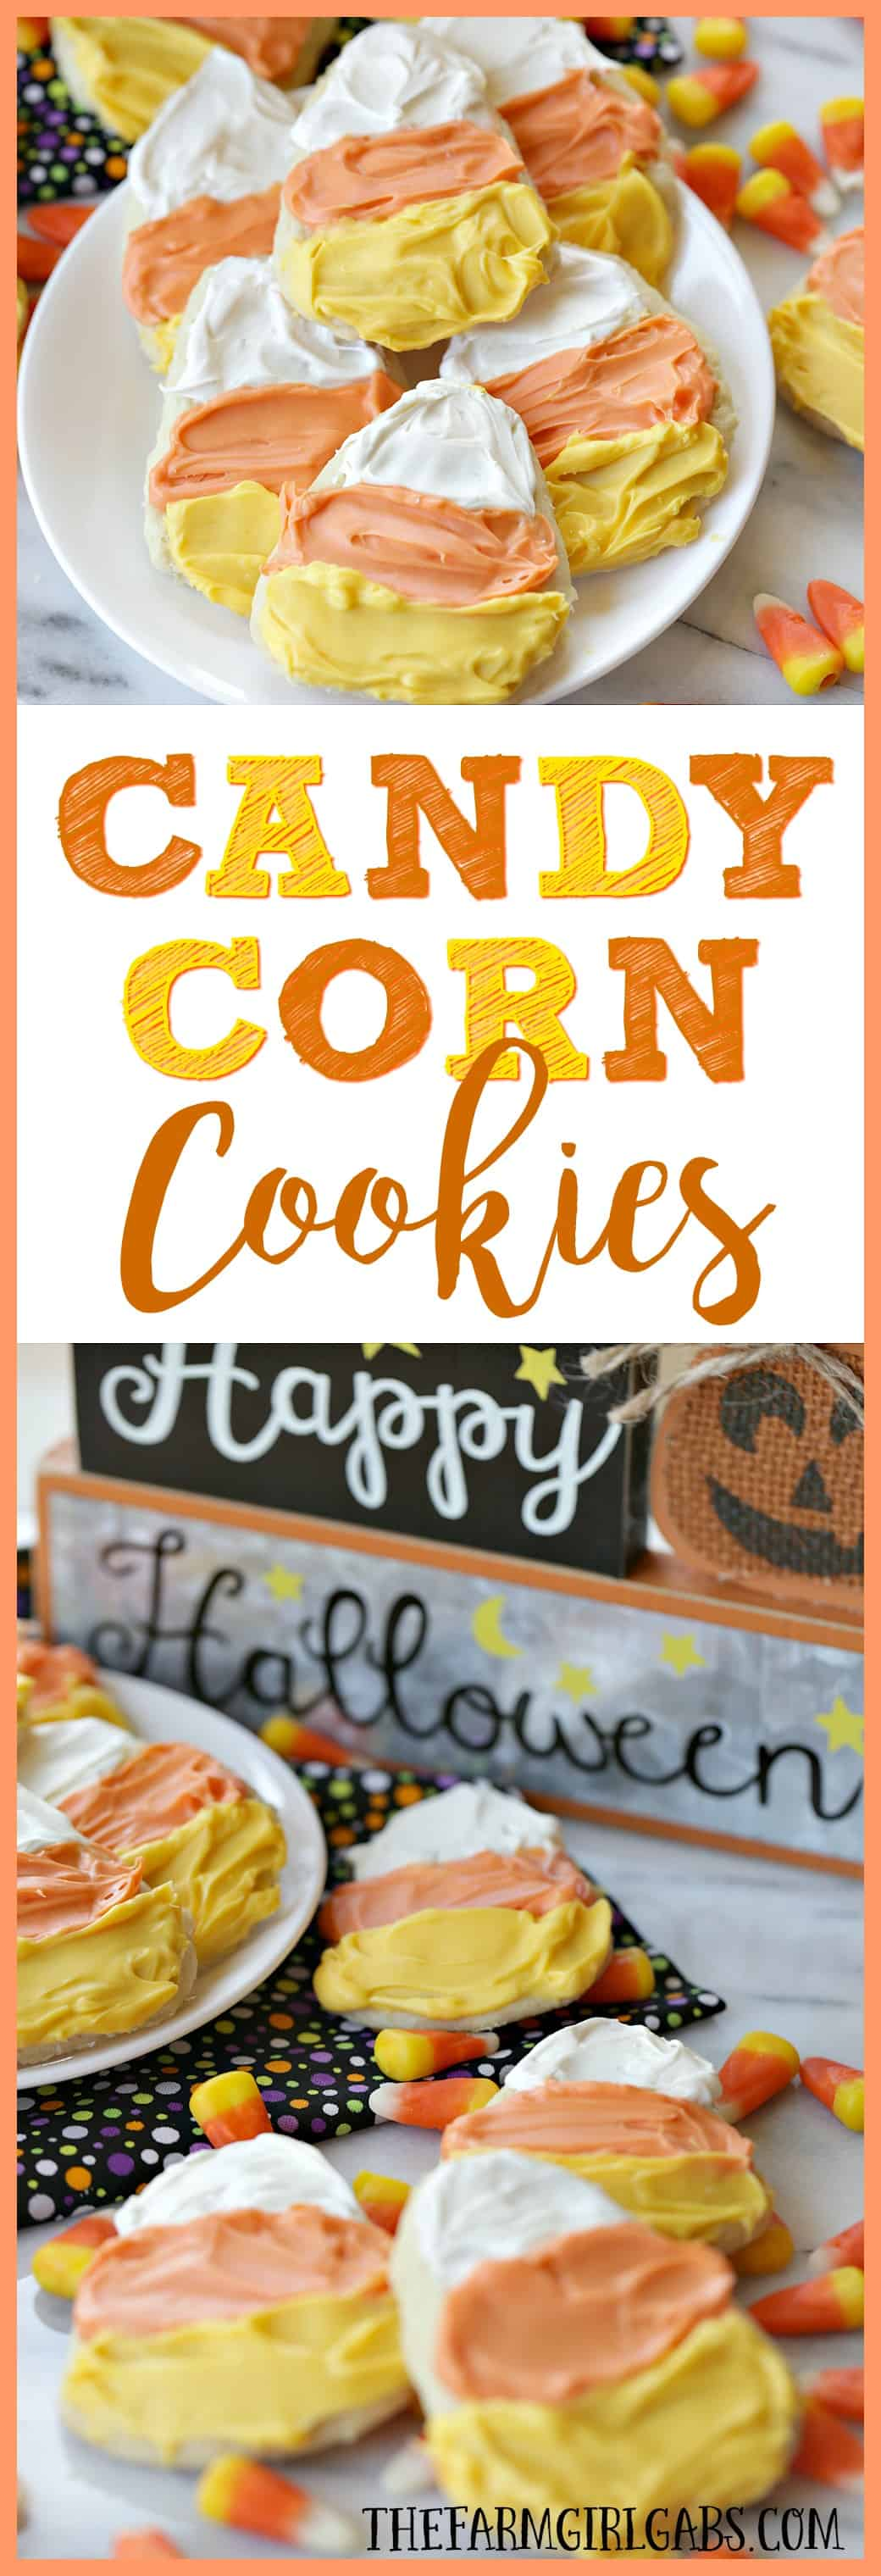 It's not fall without candy corn! These Candy Corn Cookies are a fun Halloween treat you can easily make. This recipe will be a hit at your fall or Halloween party!